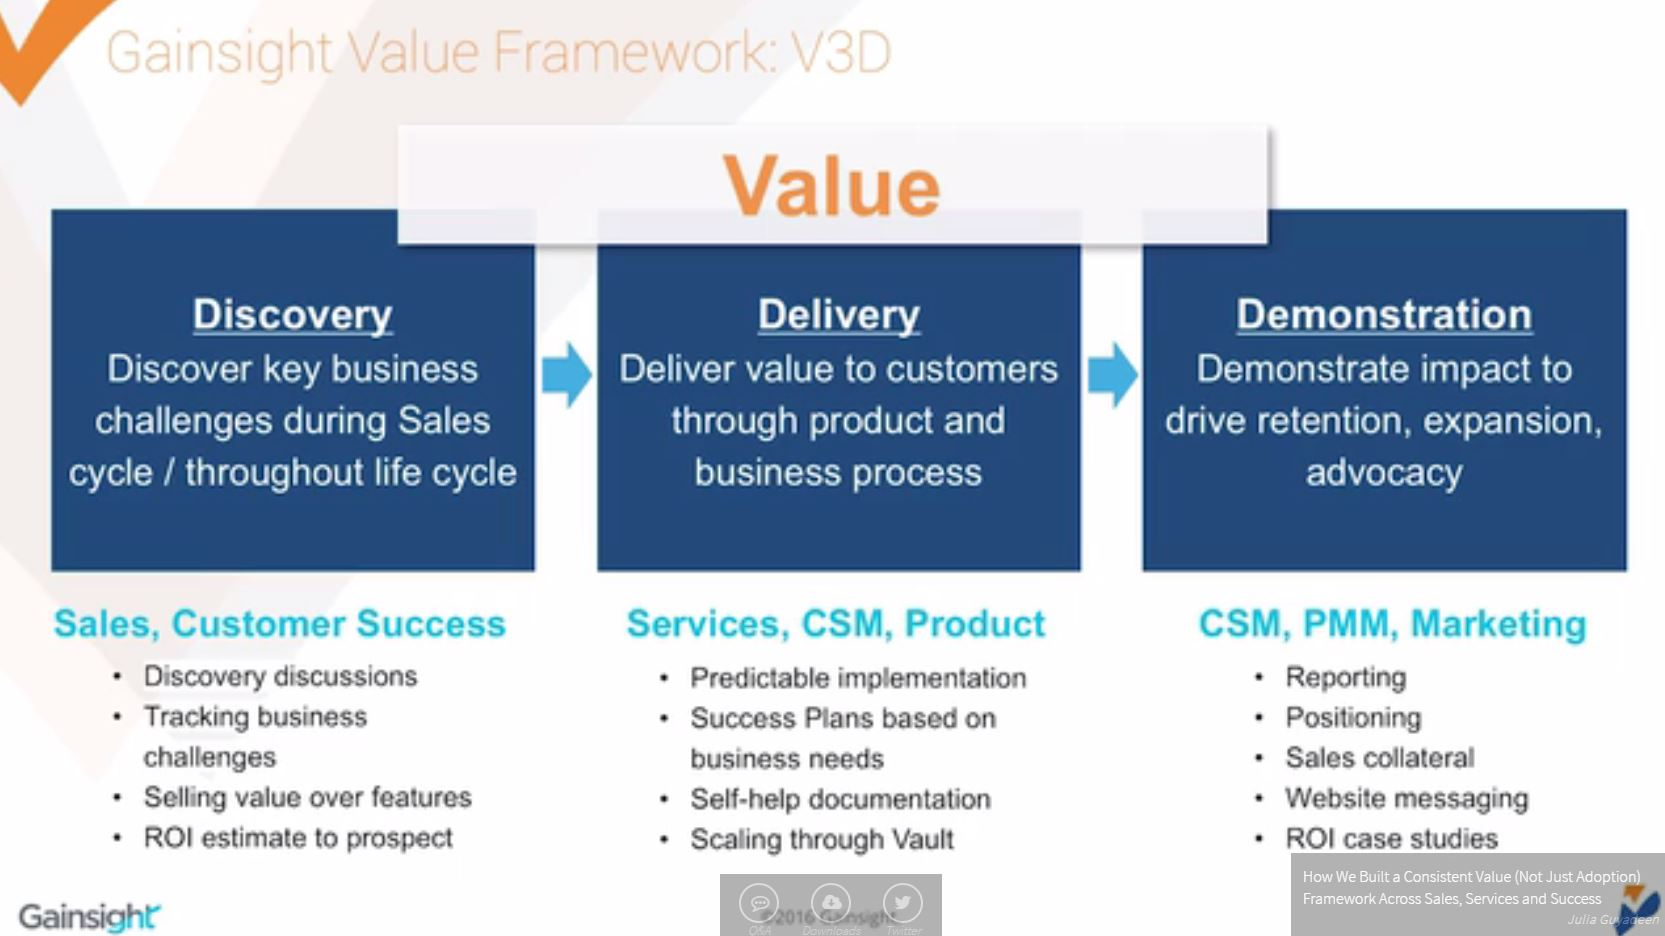 V3D: Value, Discovery, Delivery, & Demonstration